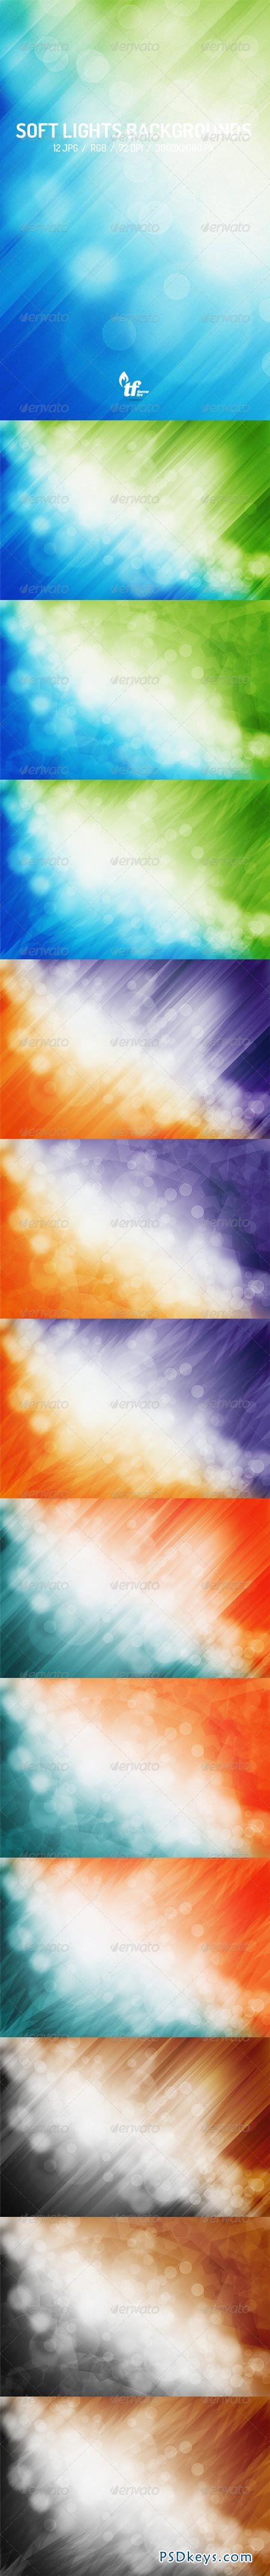 Soft Lights Abstract Backgrounds 7715186